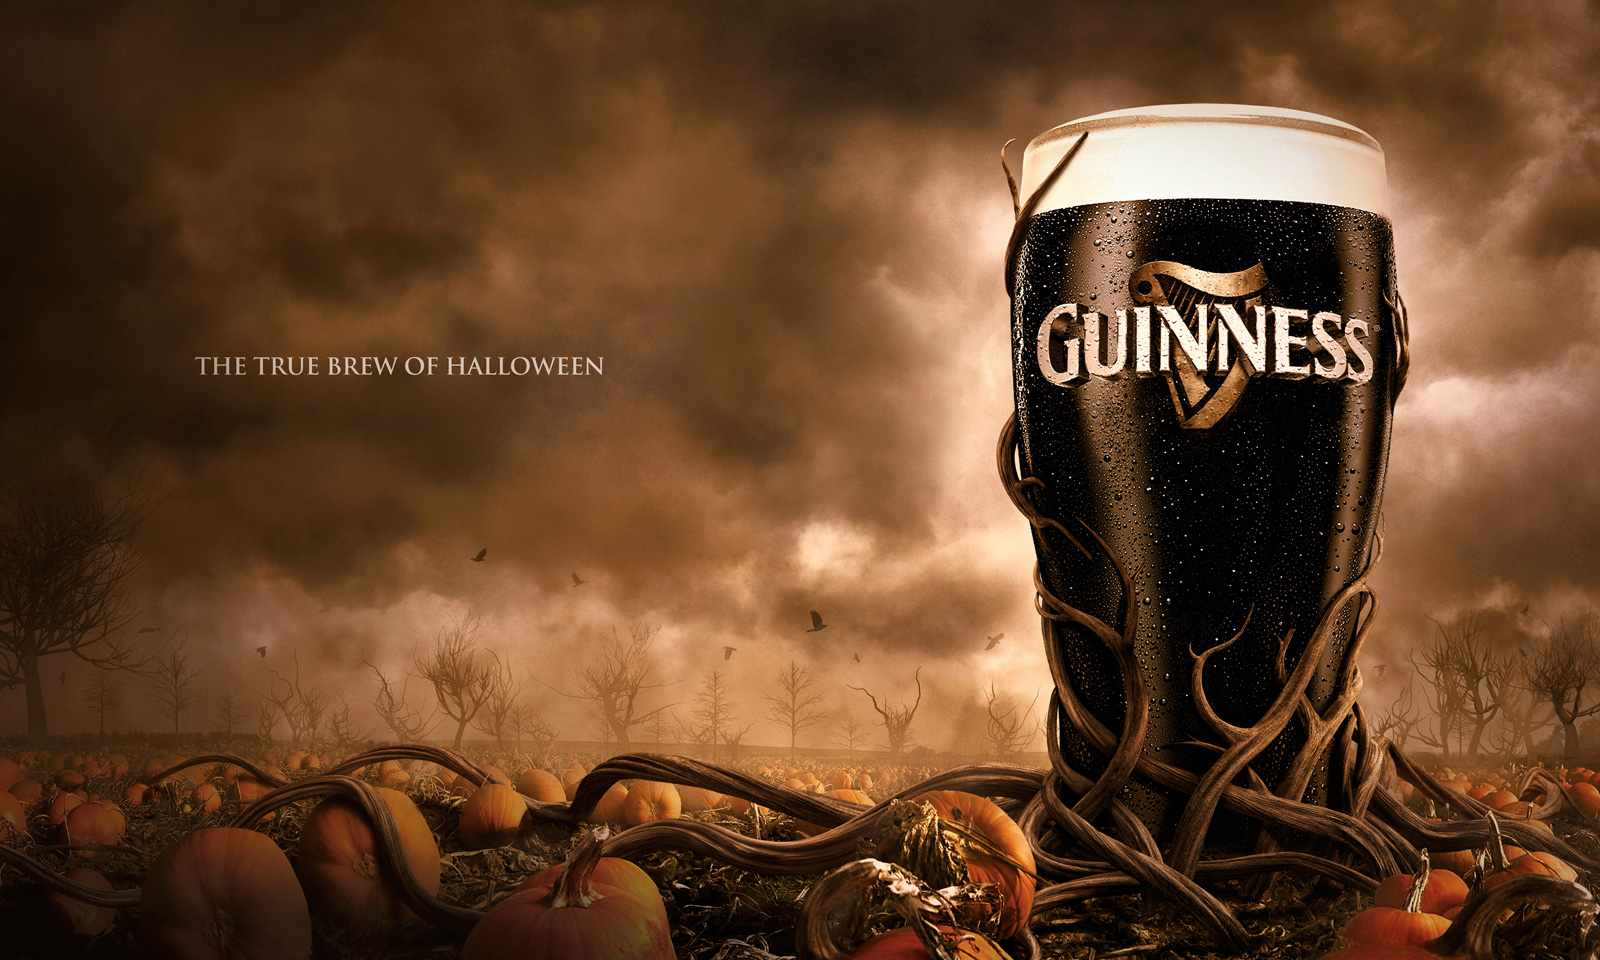 Halloween Advertising - Guinness - Copy and Design